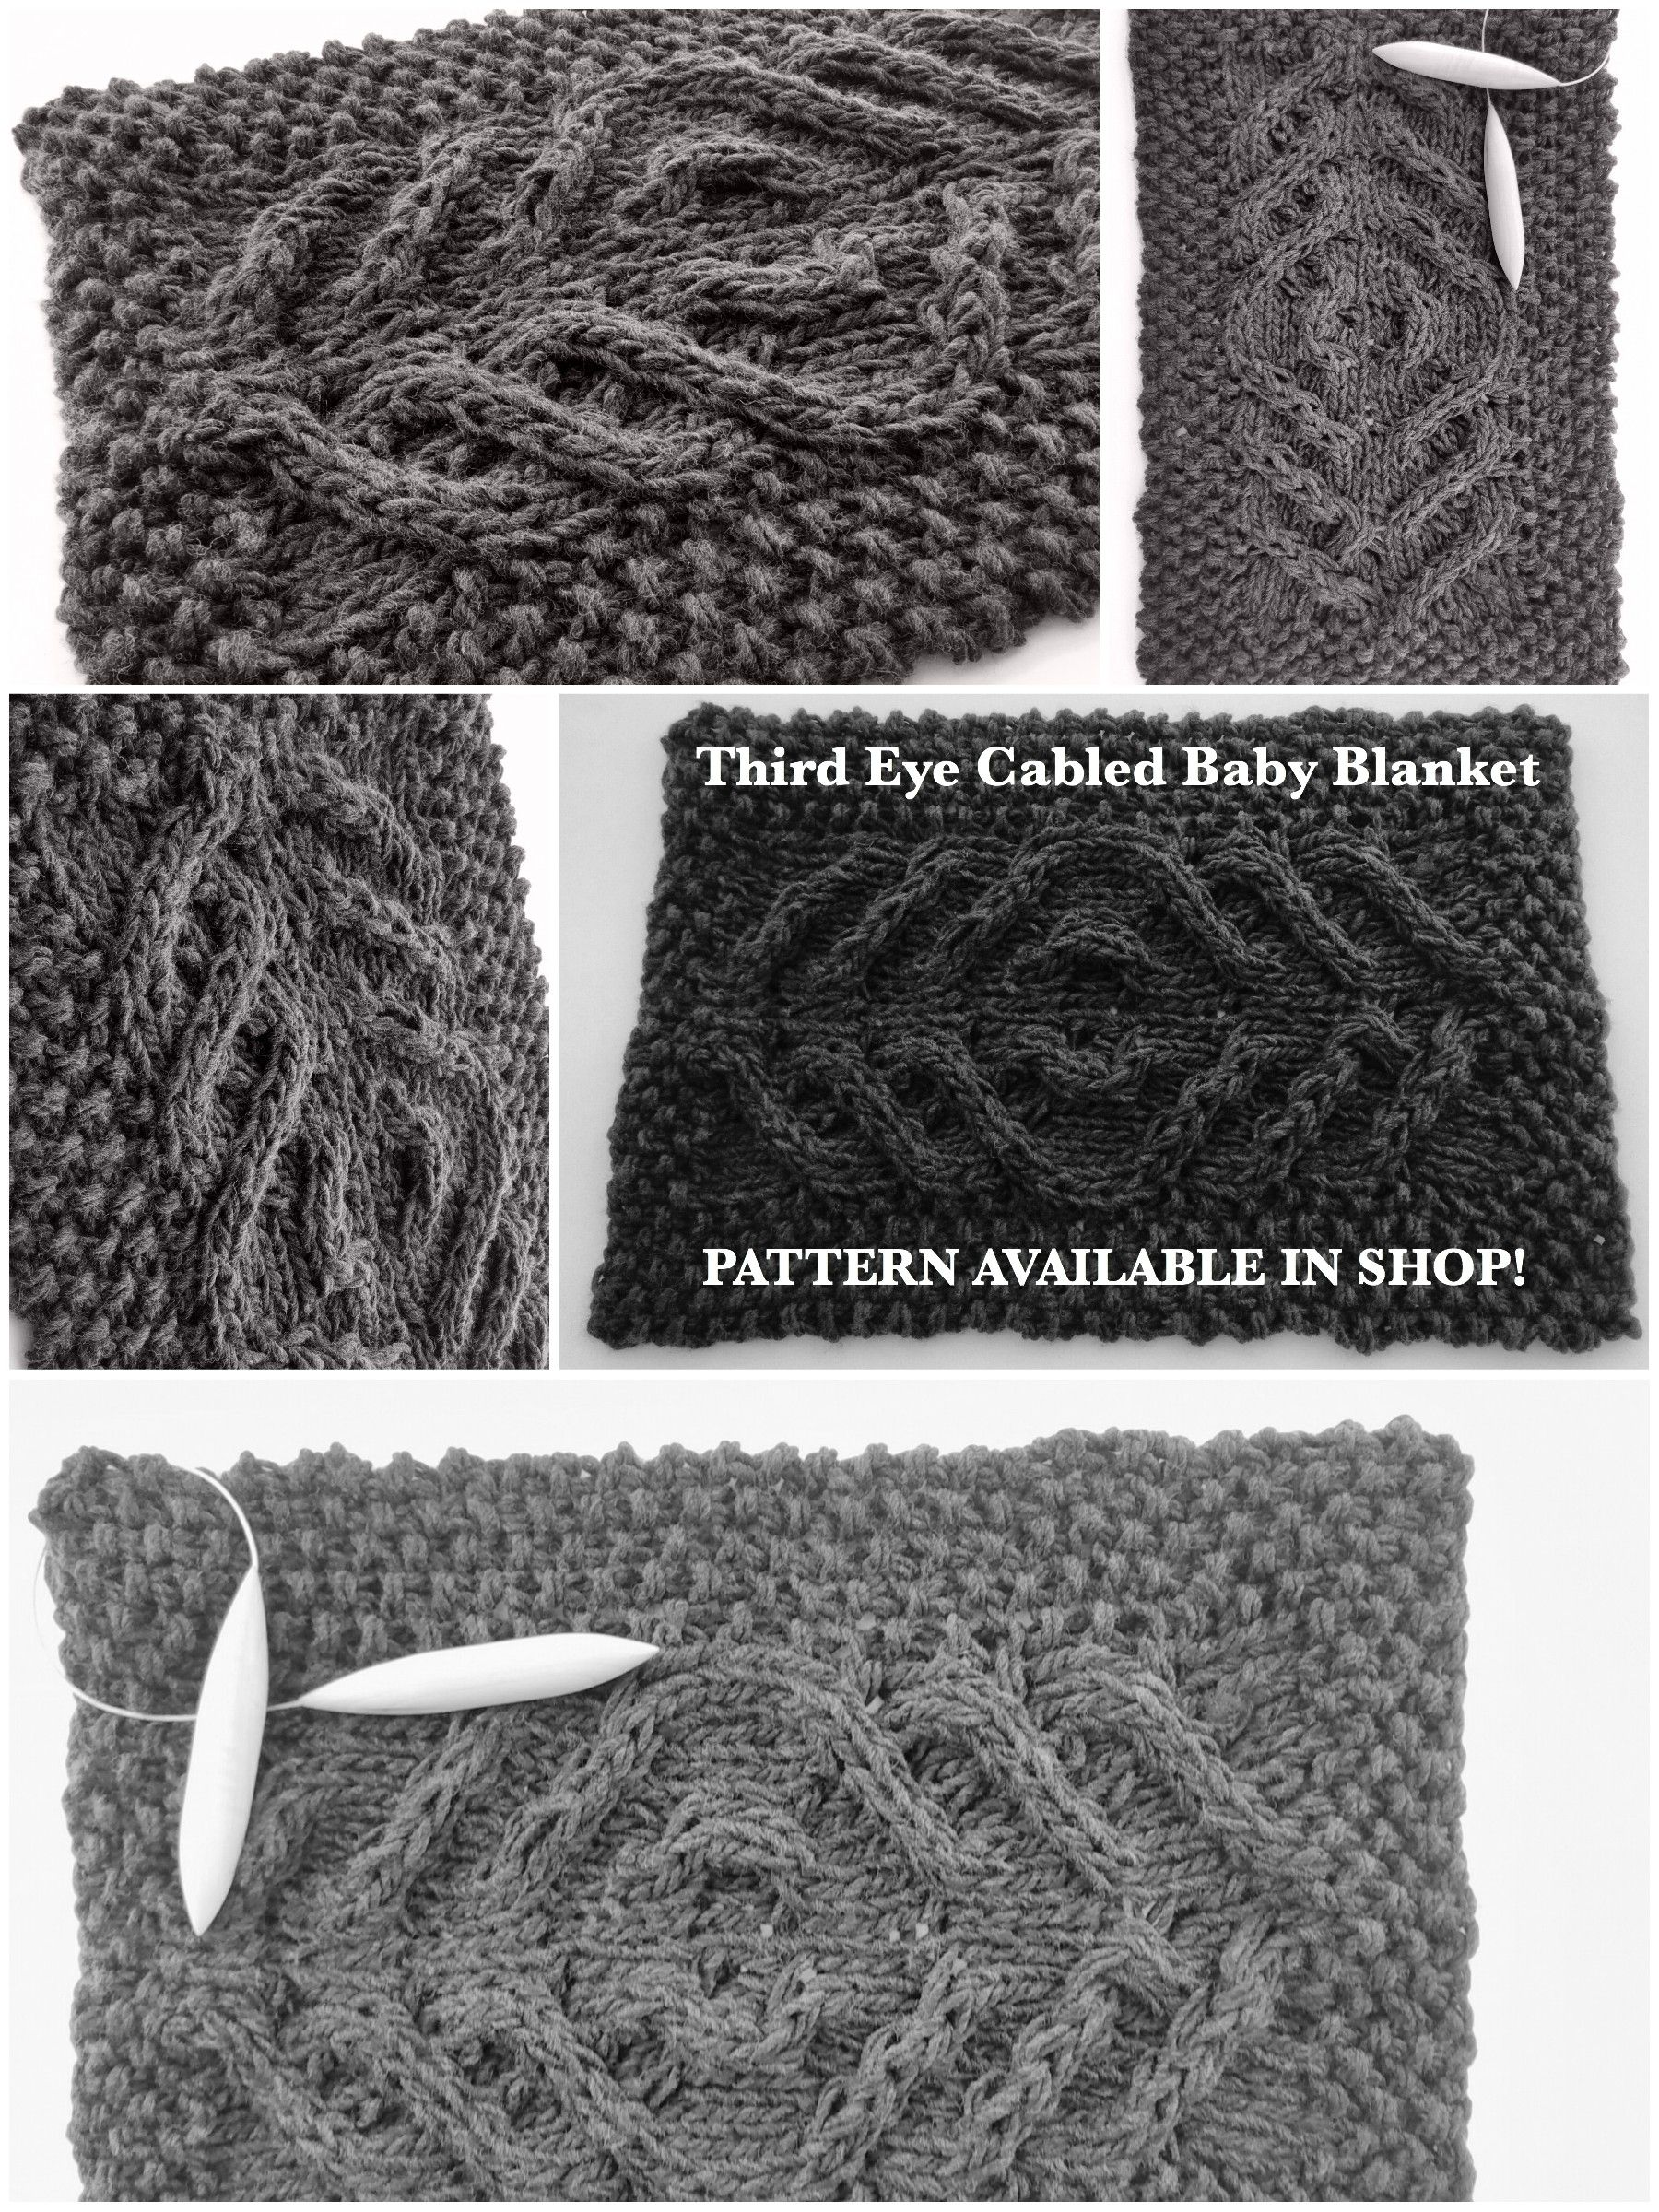 Third Eye Cabled Baby Blanket by MountainCity - PATTERN AVAILABLE ...